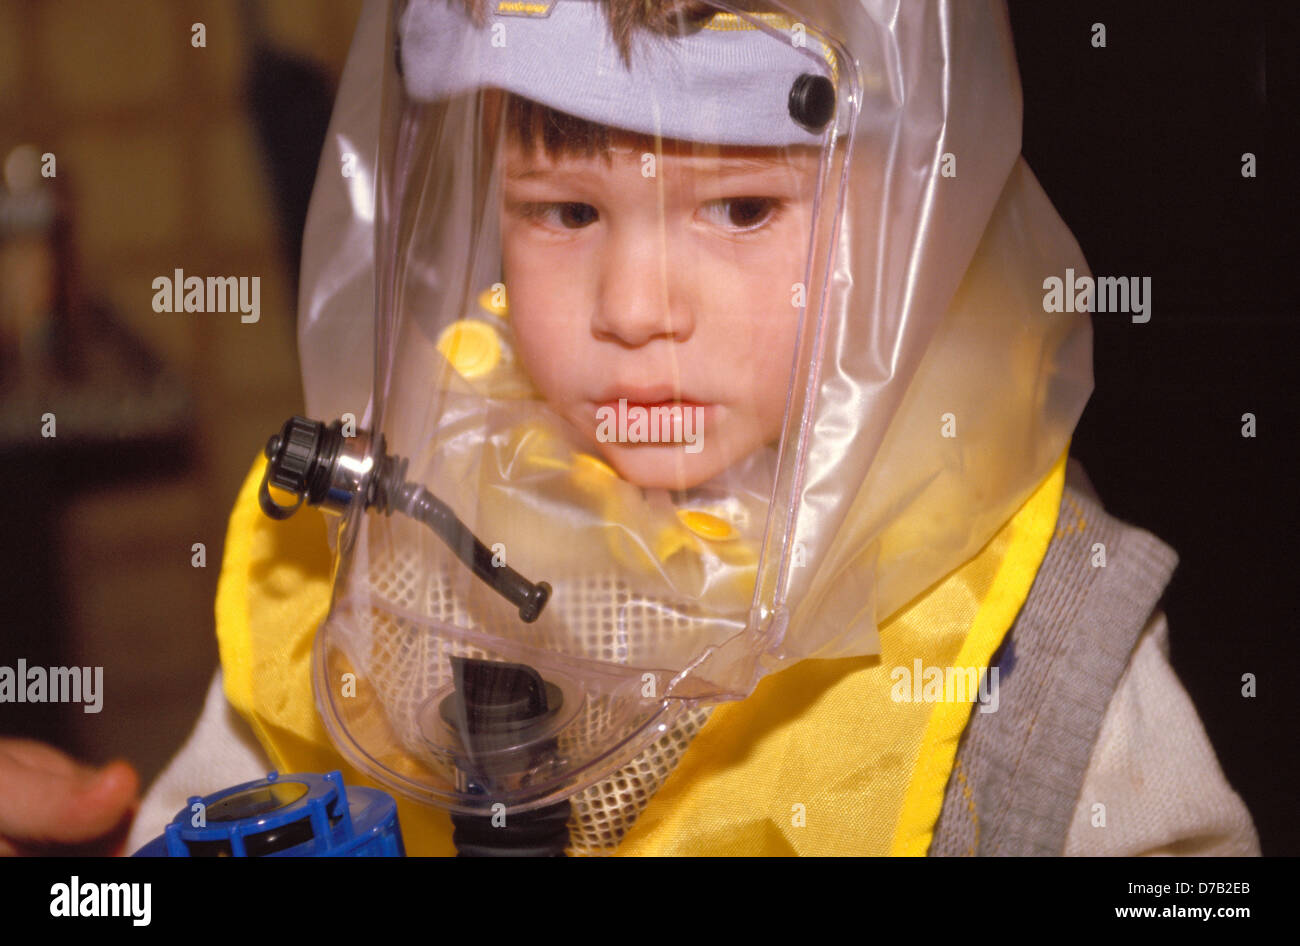 Gulf war outfit for a young boy - Stock Image